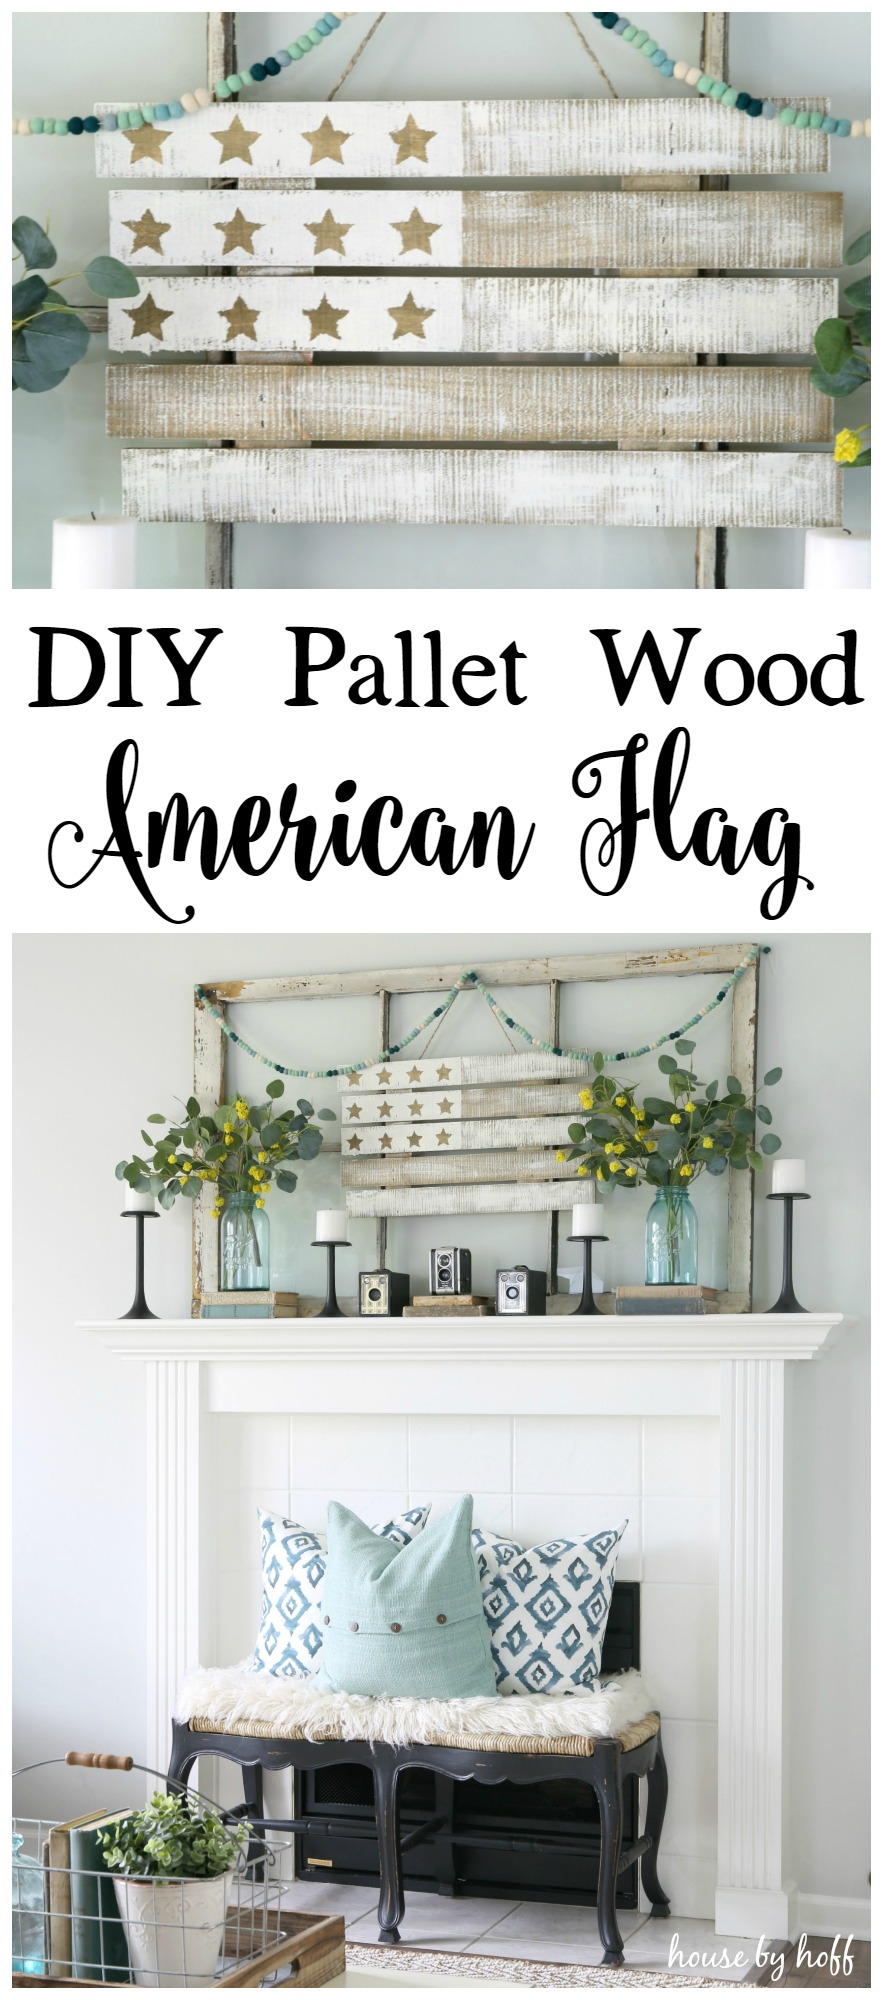 Diy Pallet Wood American Flag House By Hoff